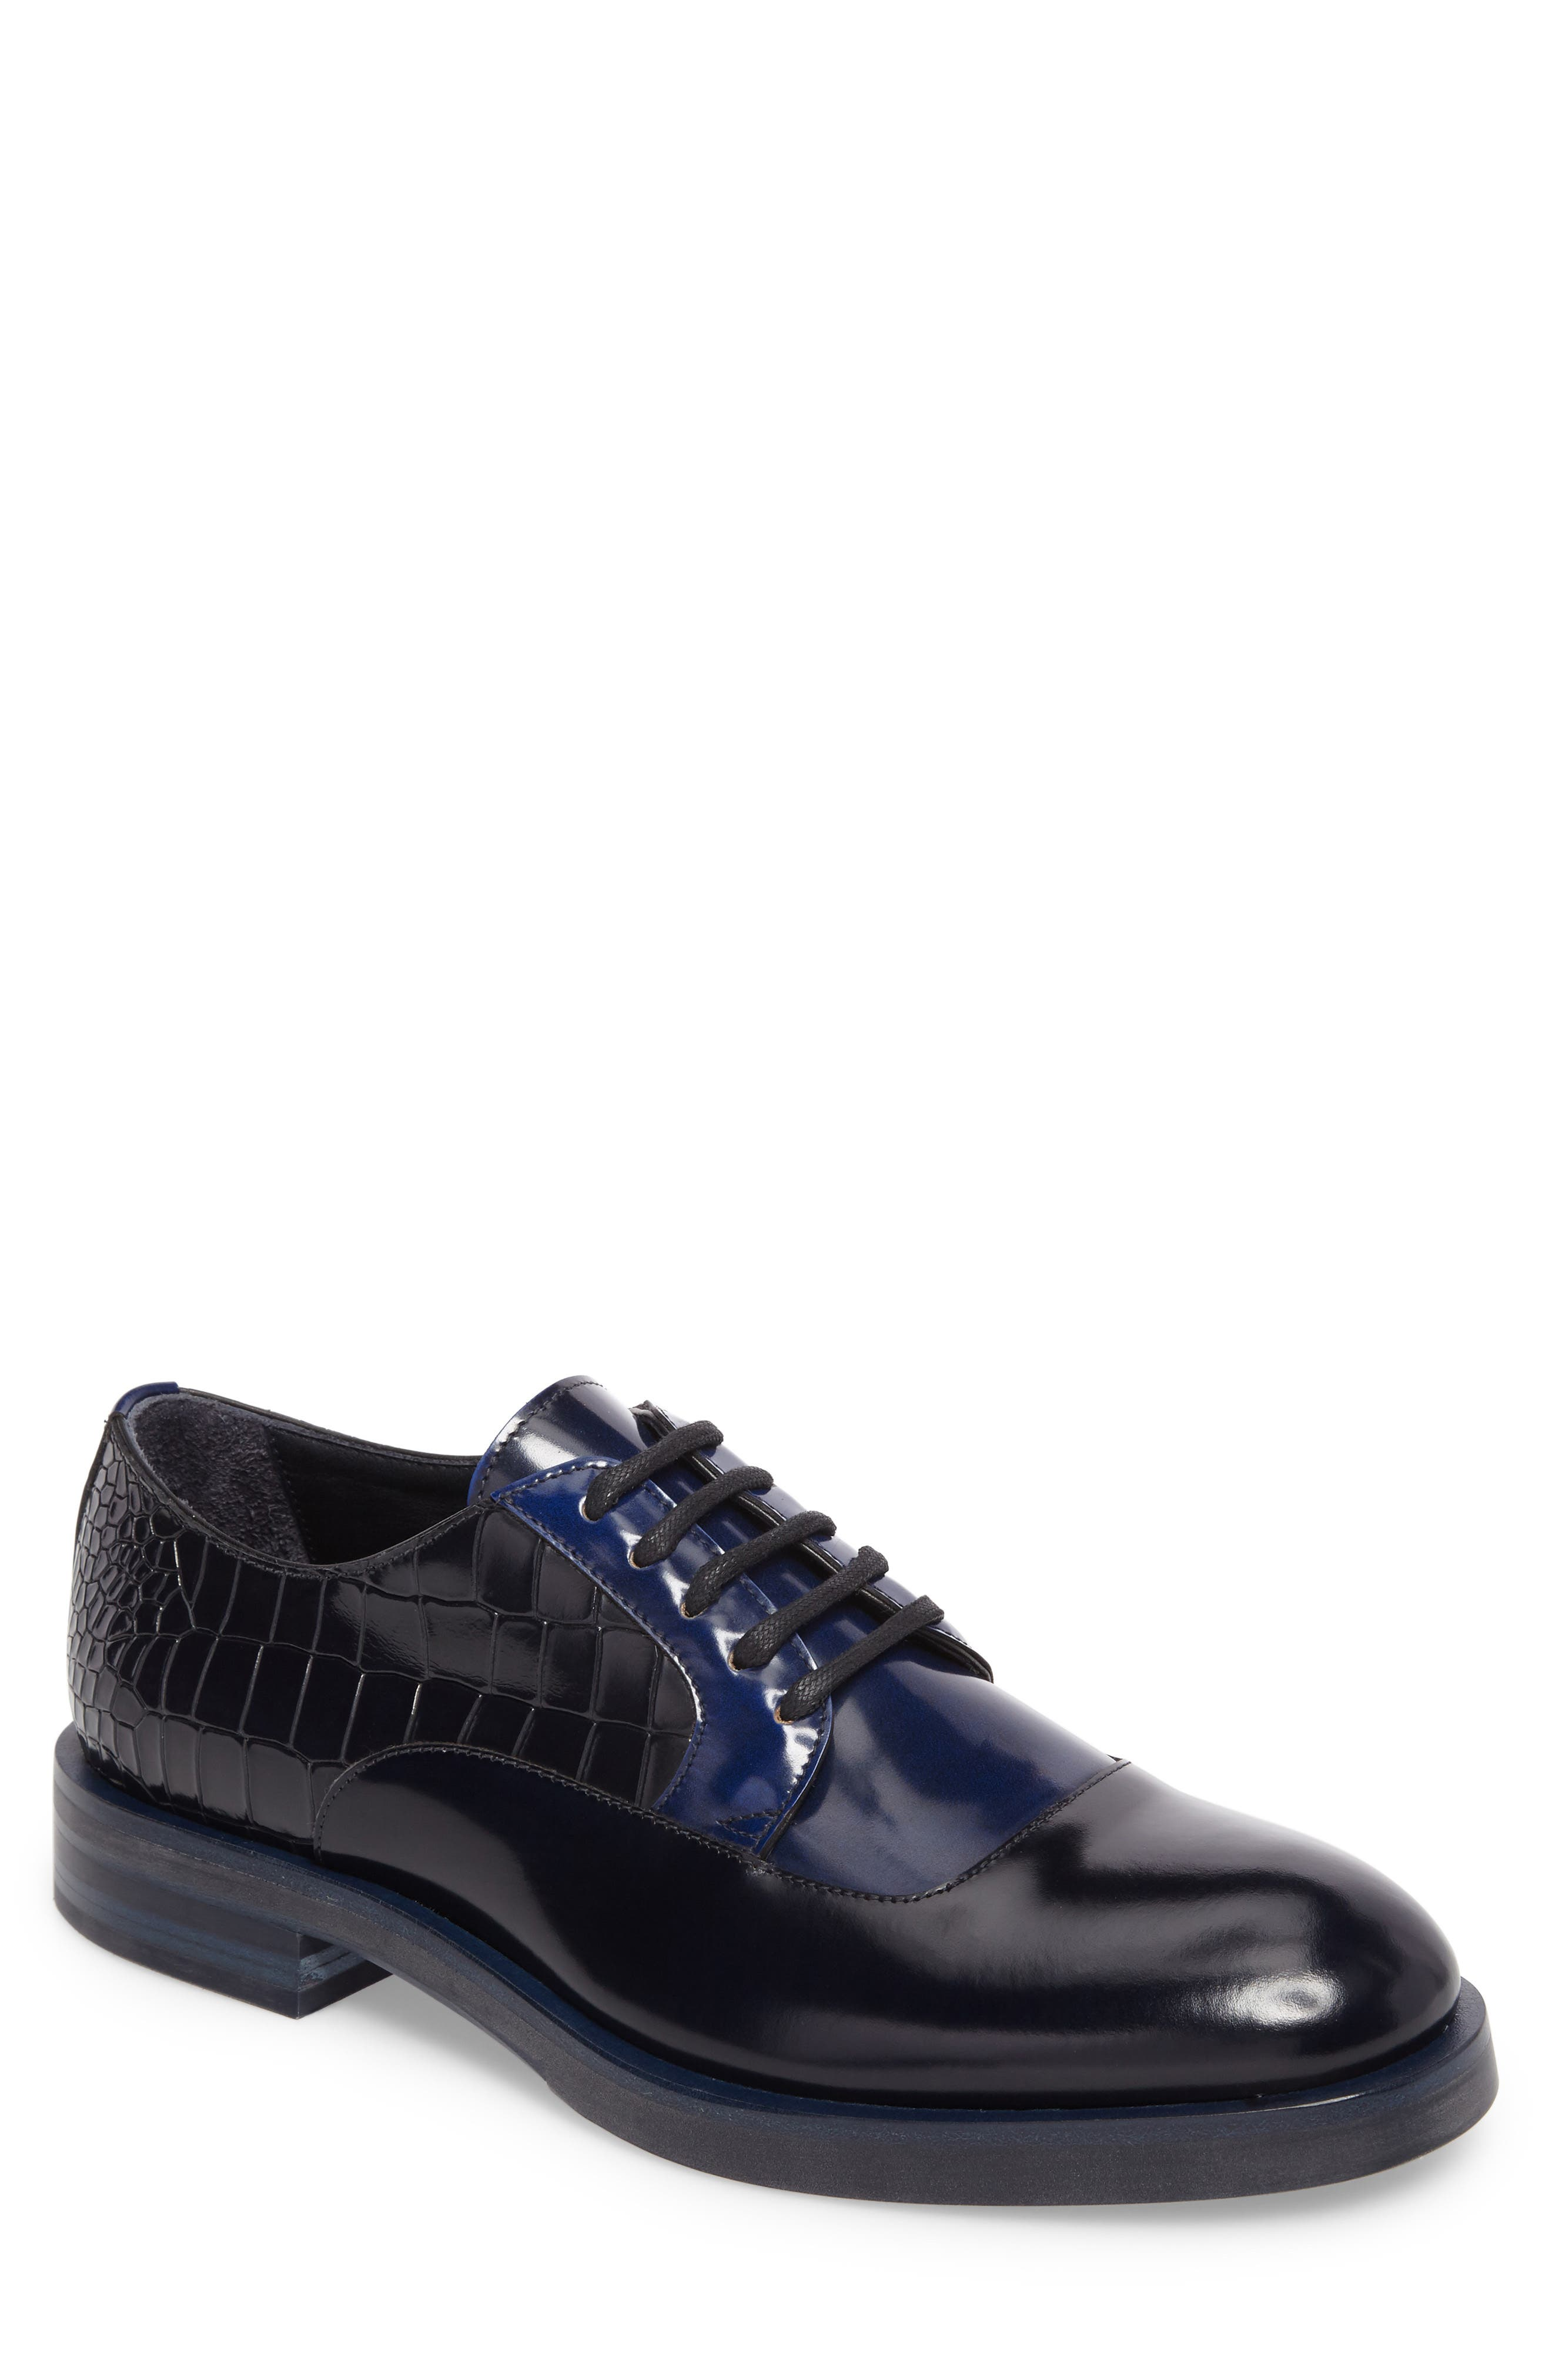 Bolan Croc Embossed Oxford,                             Main thumbnail 1, color,                             410